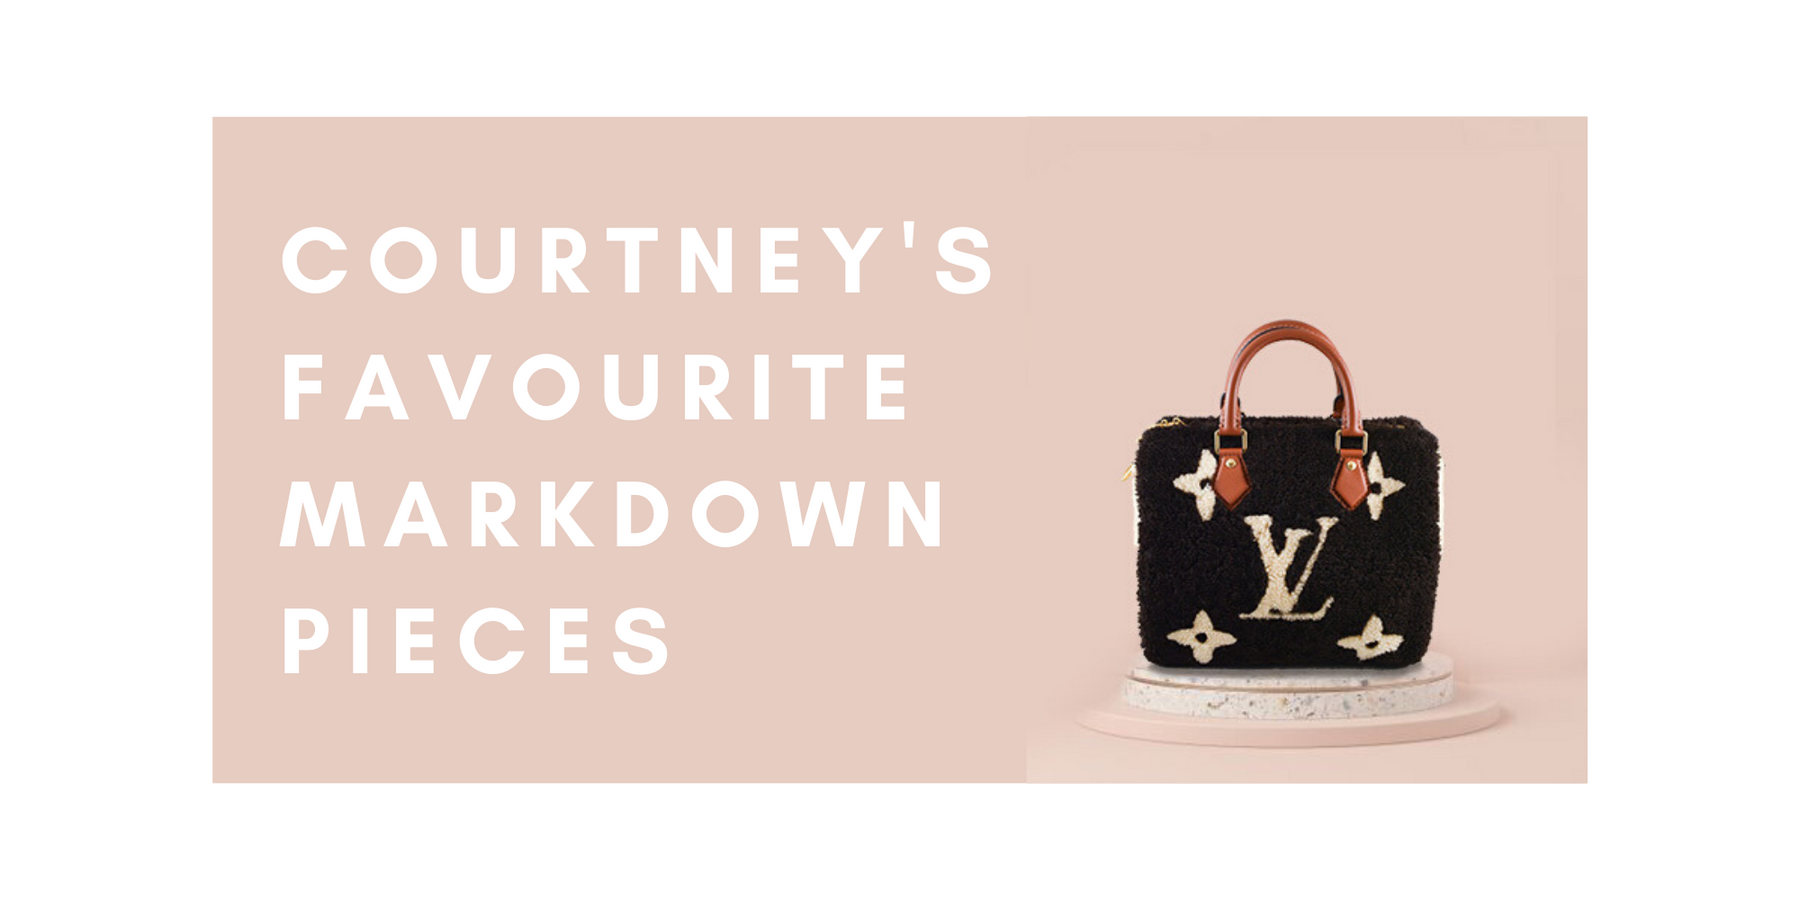 COURTNEY'S FAVOURITE MARKDOWN PIECES